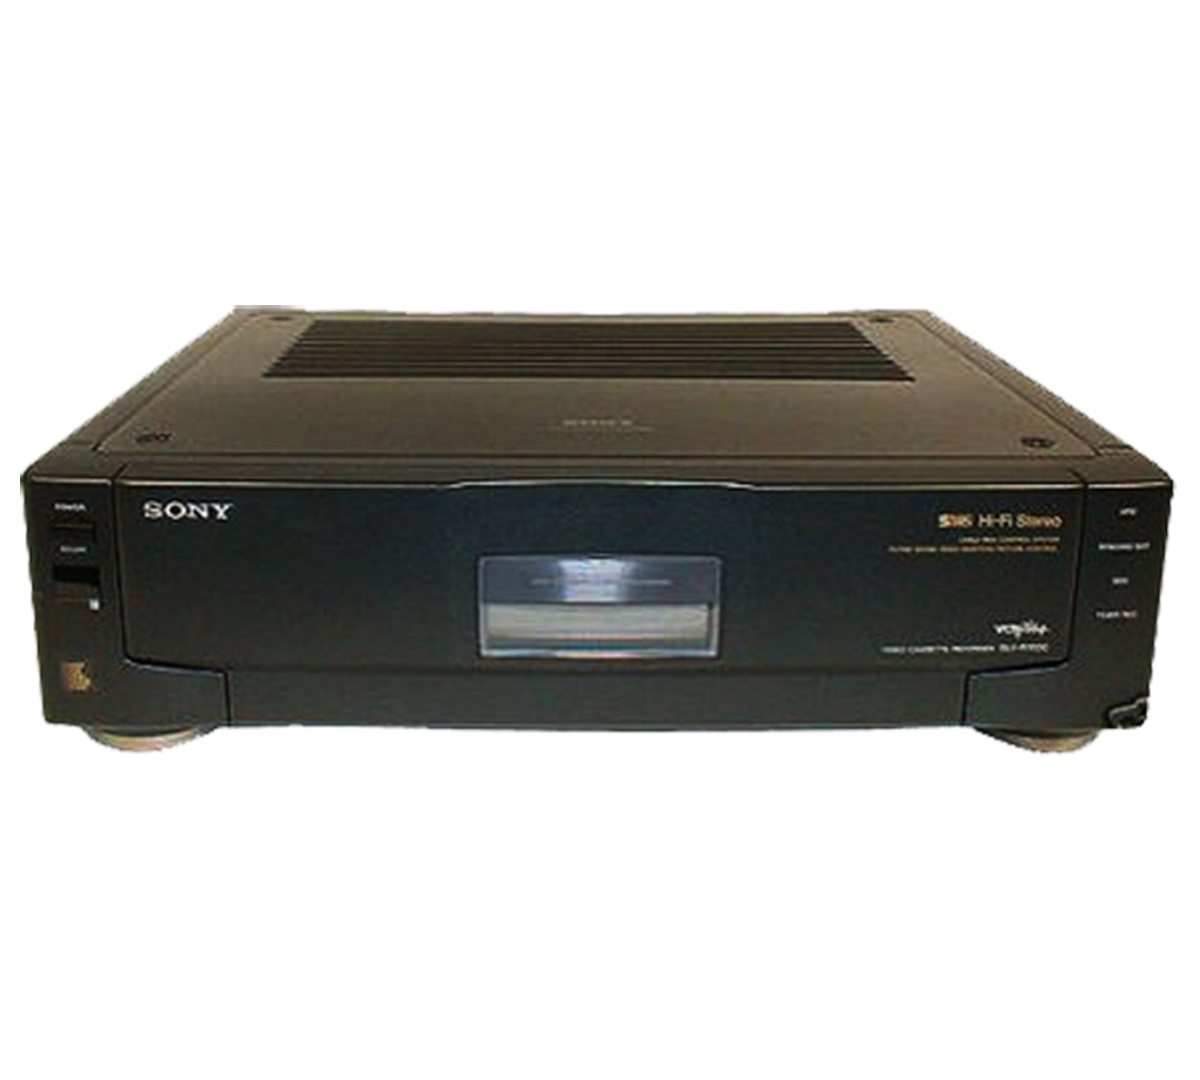 Vcrs Vhs Device Videocassette Svhs Recorder Electronic PNG Image